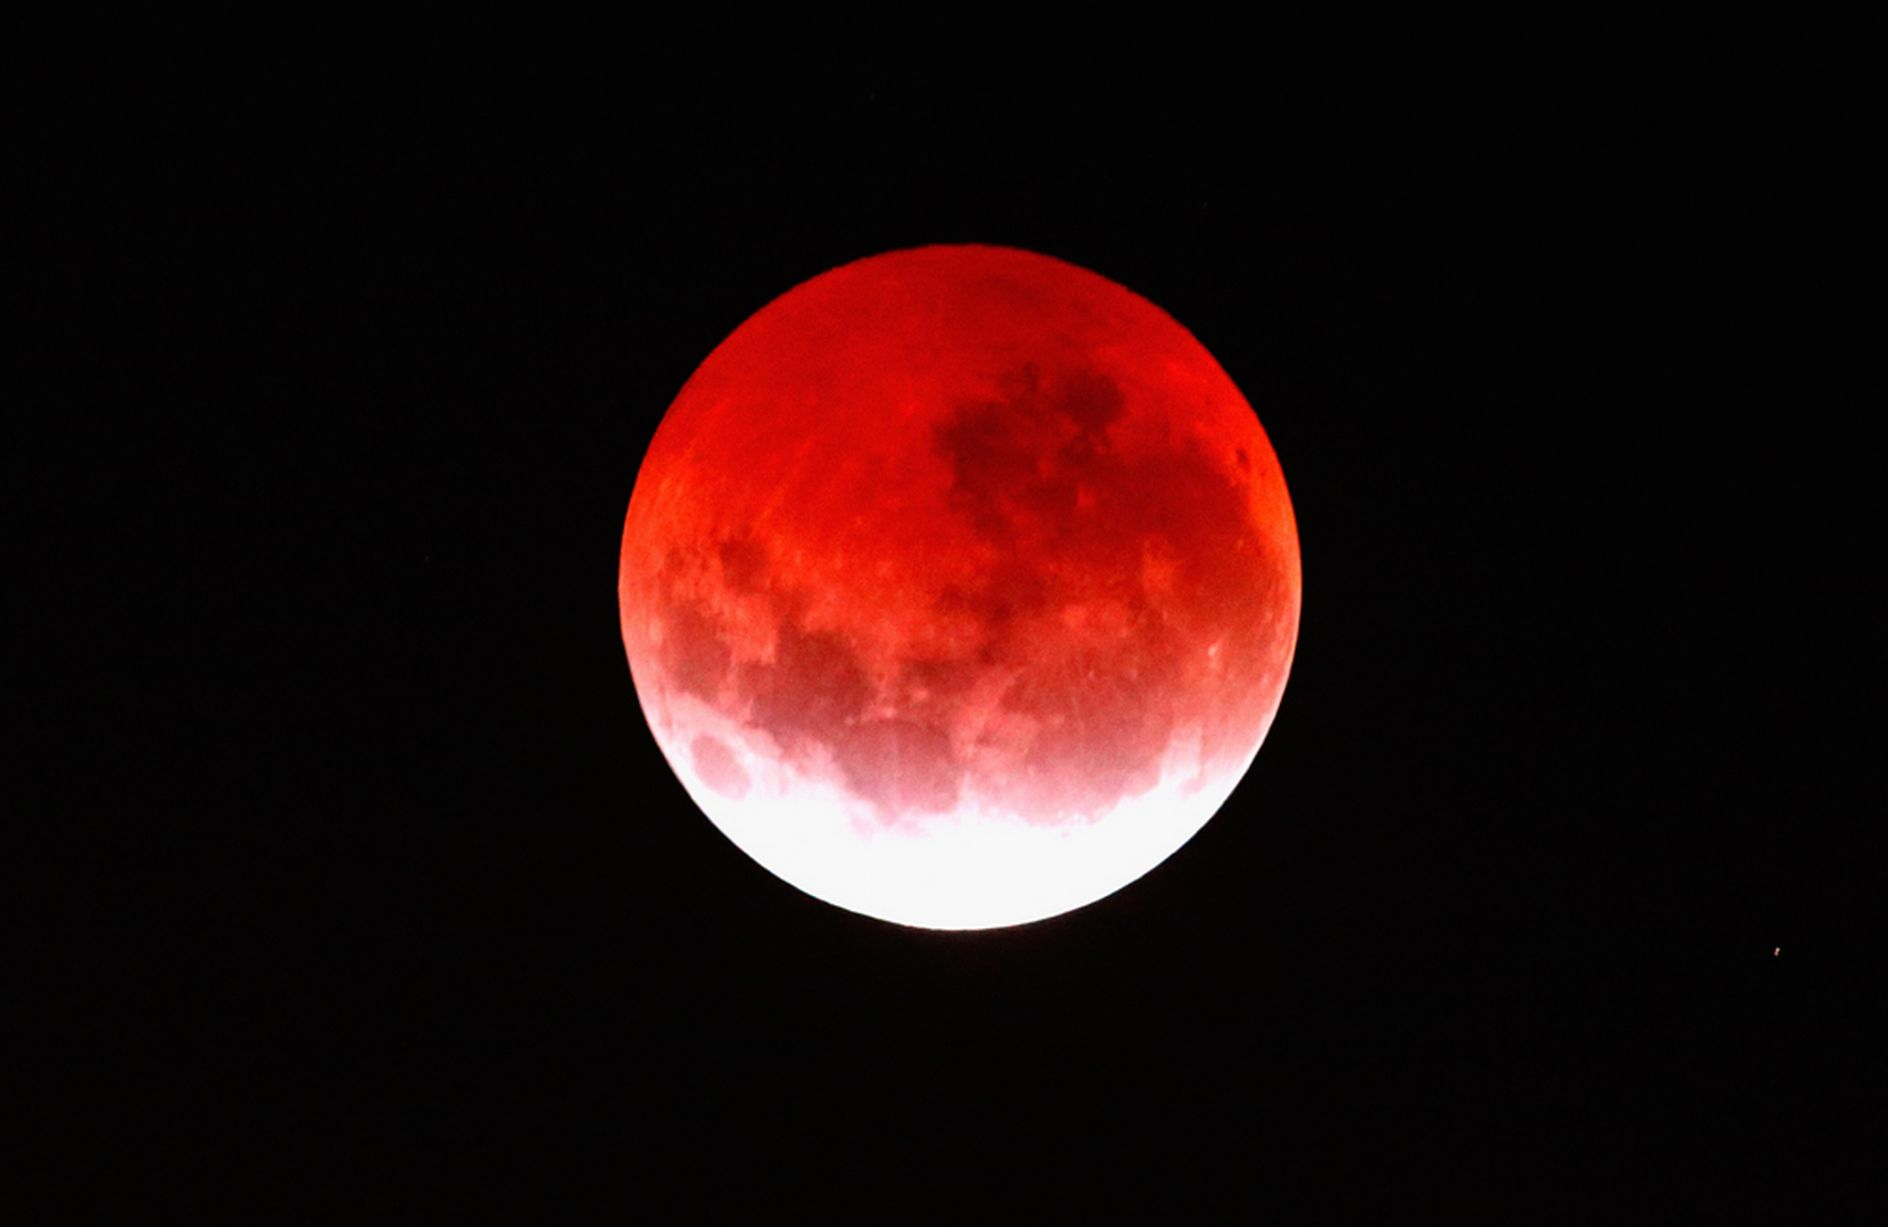 blood moon day today - photo #16